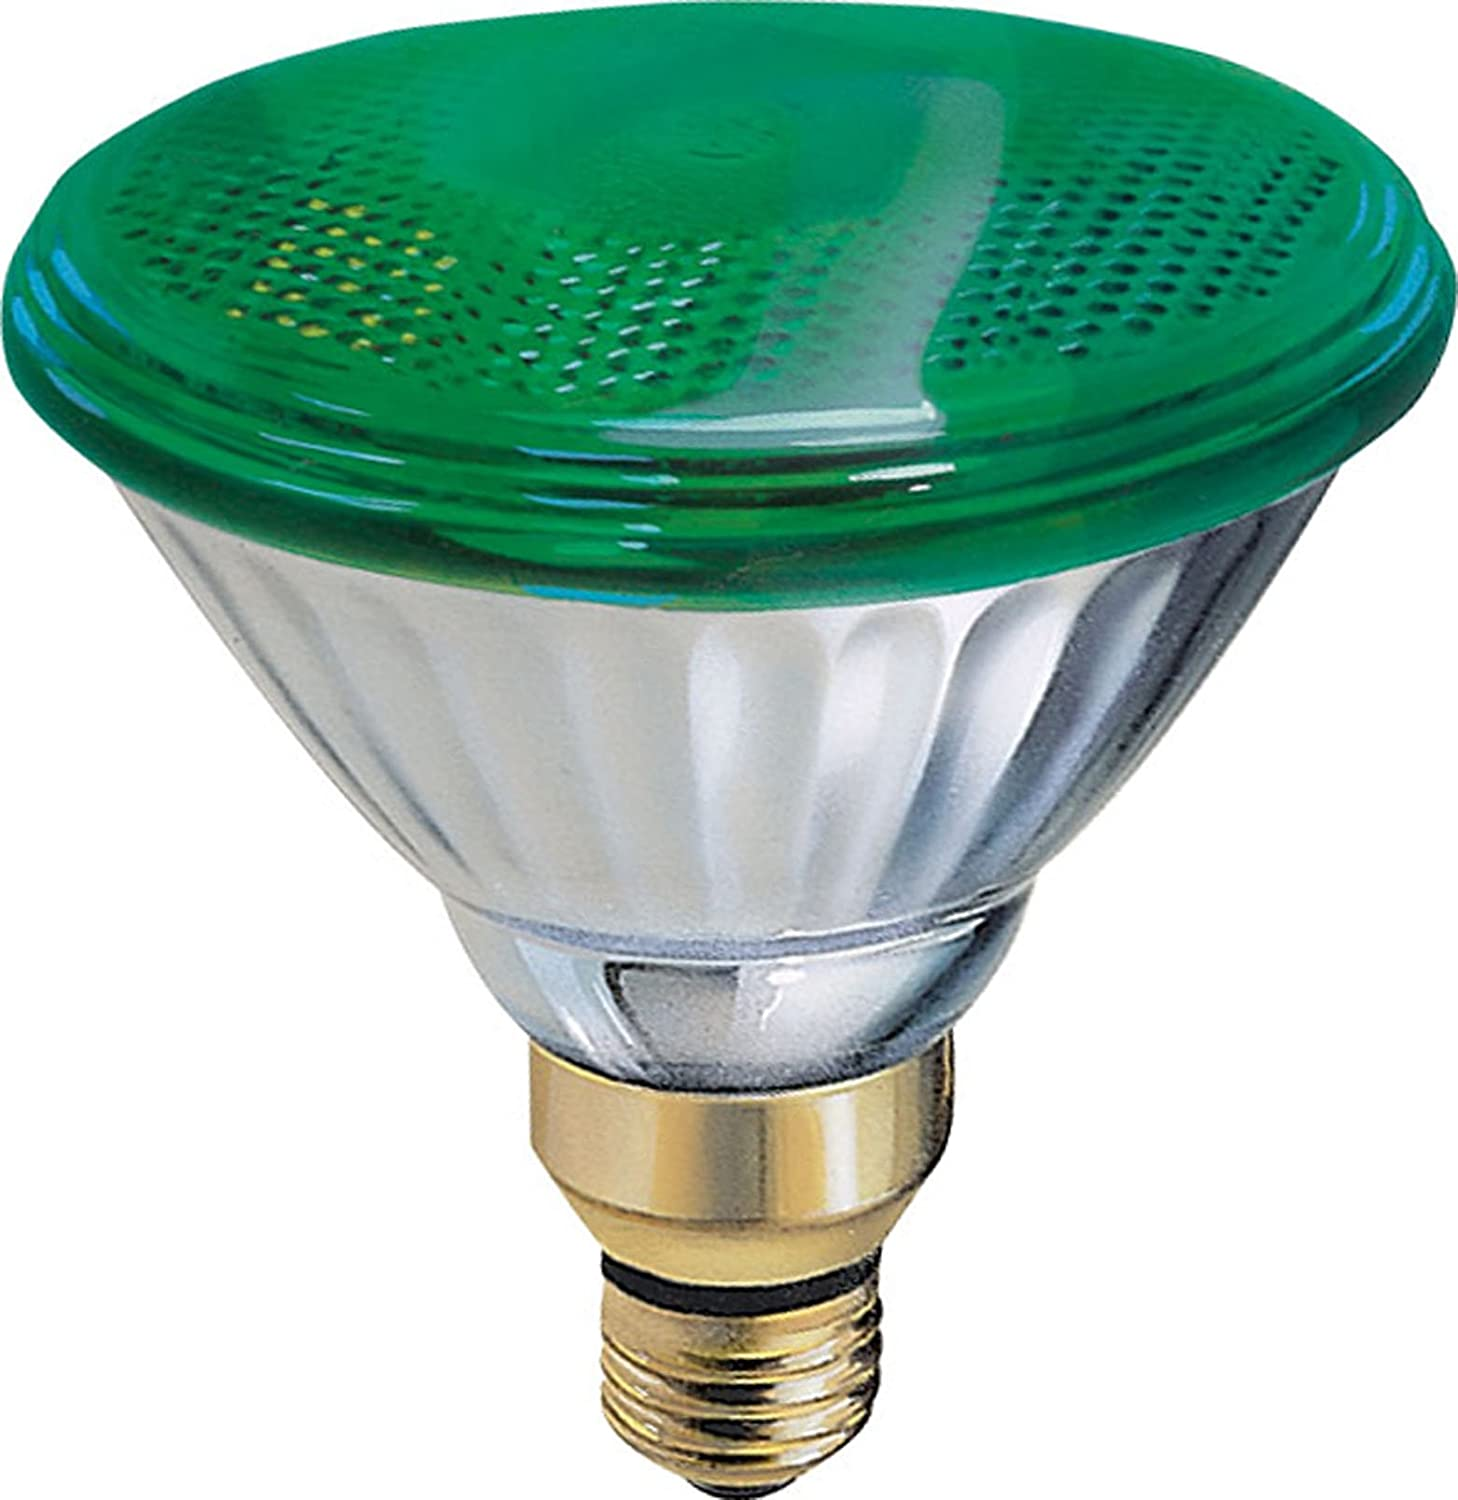 Ge lighting 13474 85 watt outdoor par38 incandescent light bulb ge lighting 13474 85 watt outdoor par38 incandescent light bulb green colored flood lights outdoor amazon audiocablefo